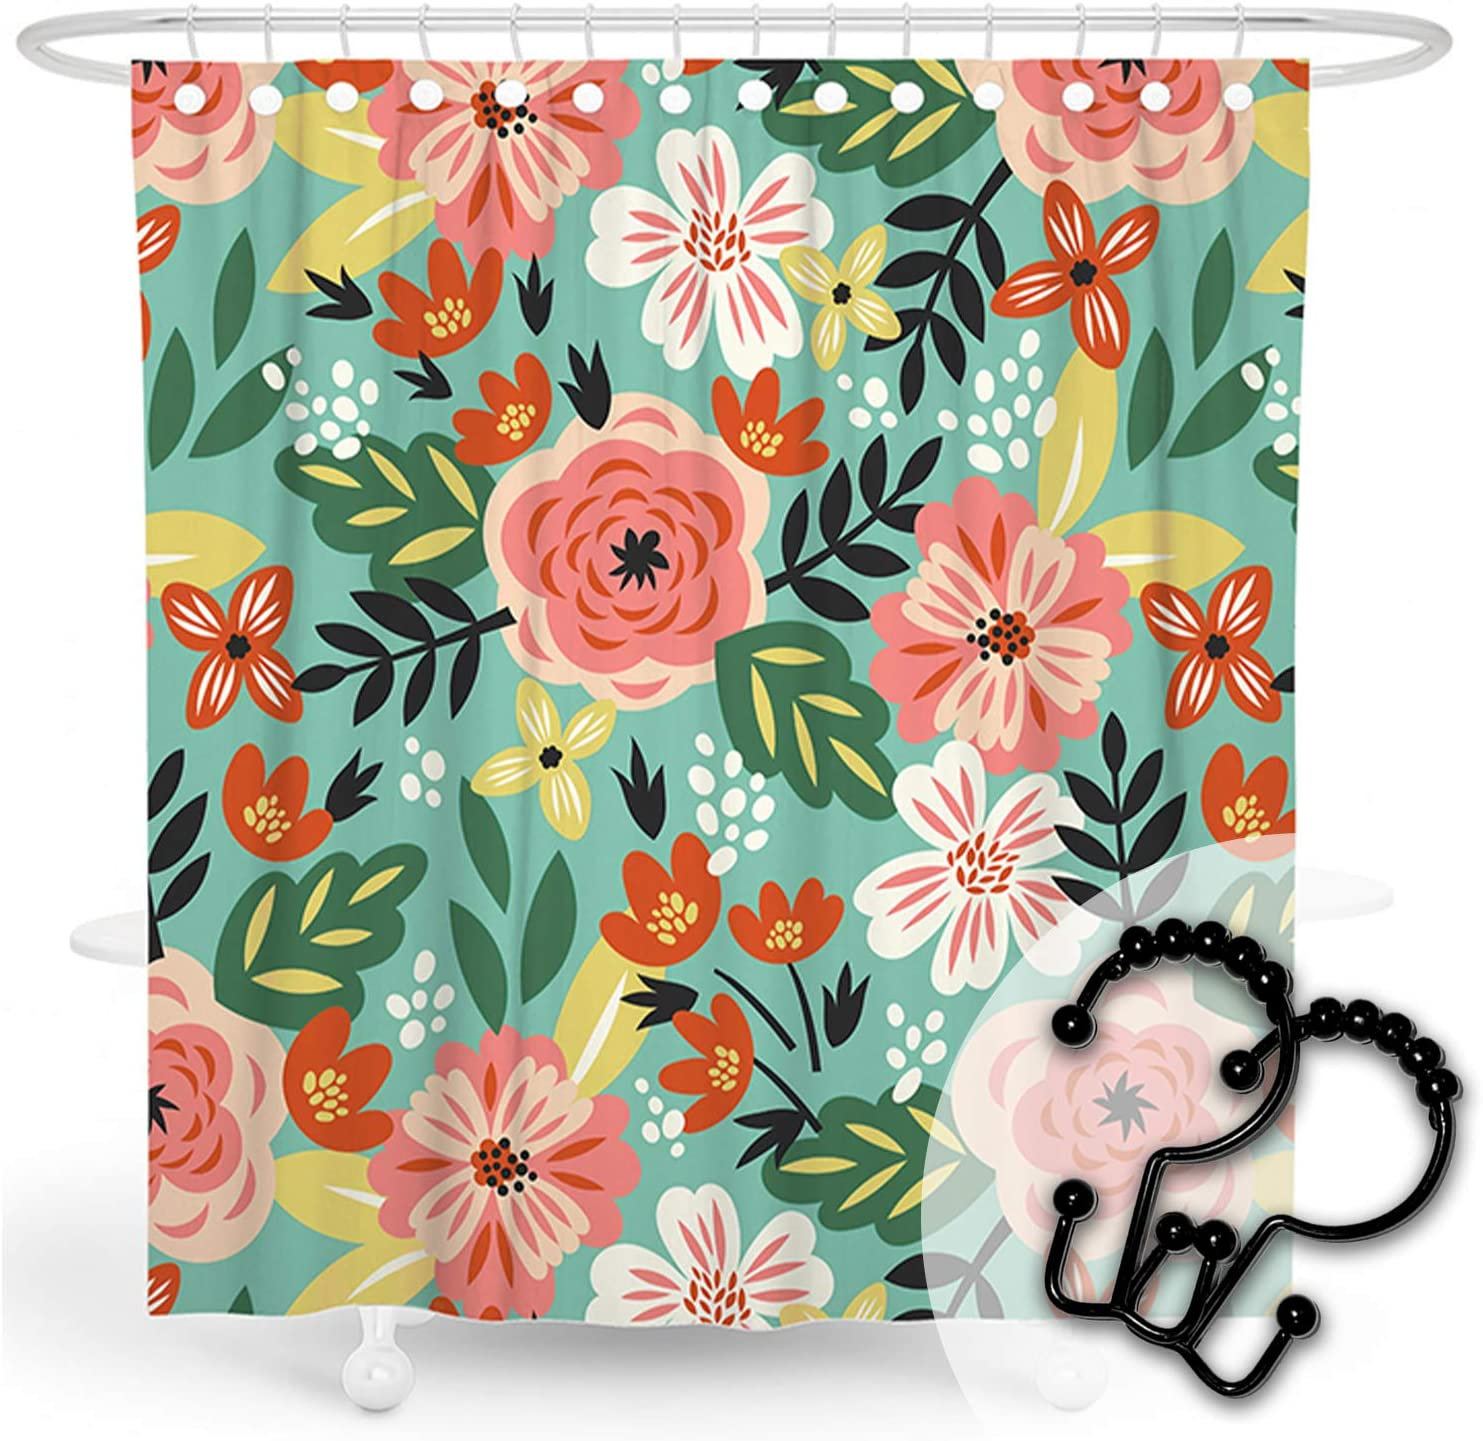 DESIHOM Floral Shower Curtain Flower Shower Curtain Wildflower Shower Curtain Plant Shower Curtain Botanical Shower Curtain Garden Shower Curtain Fall Polyester Waterproof Shower Curtain 72x72 Inch